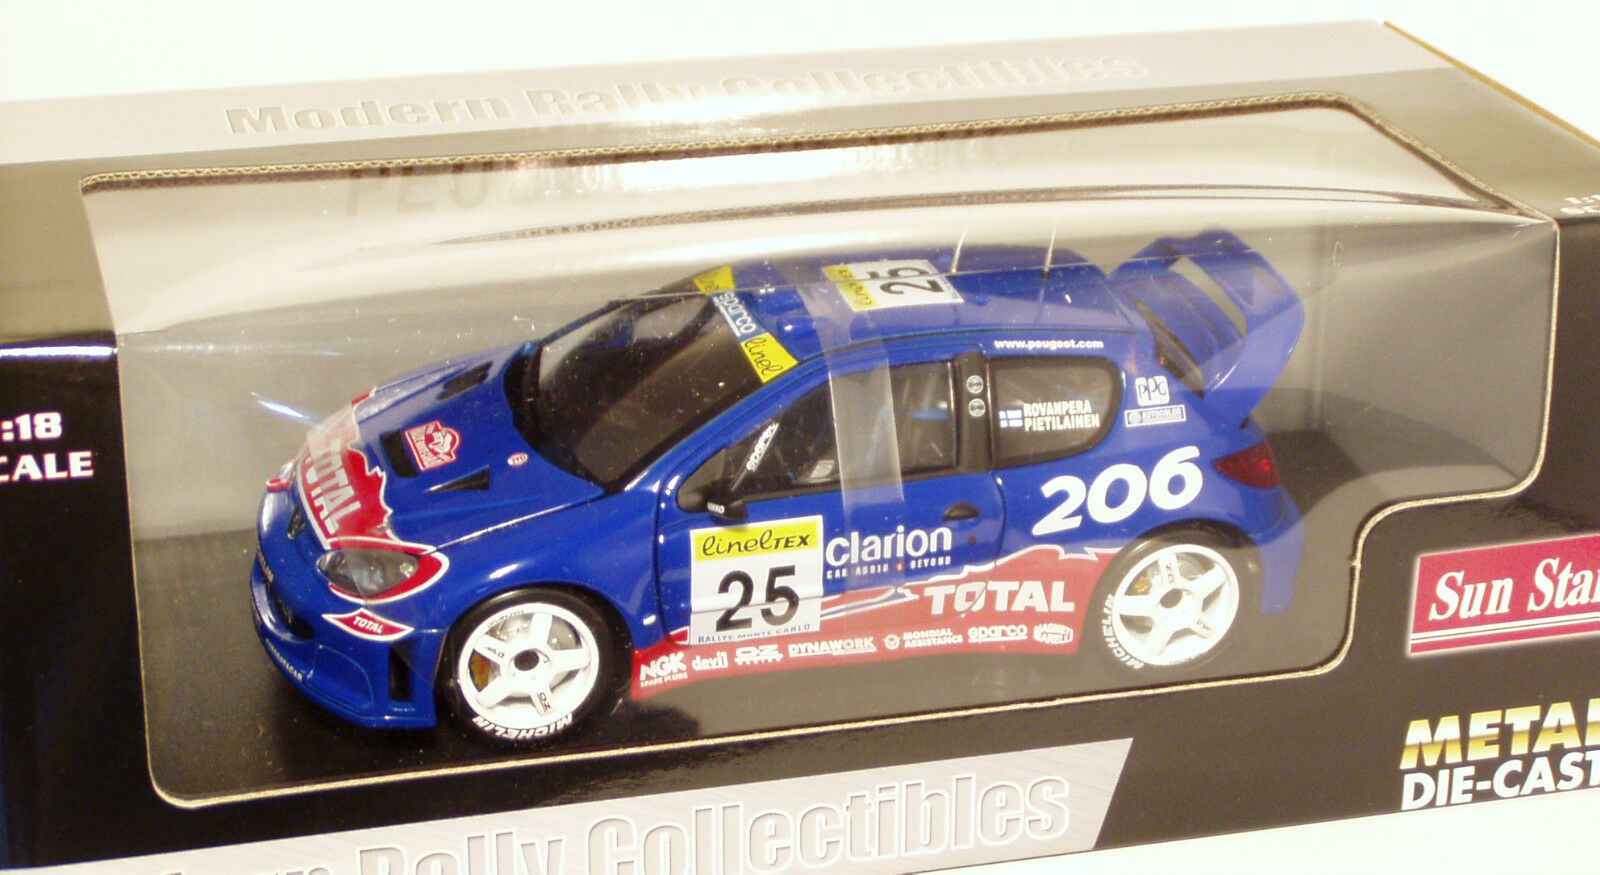 1 18 Peugeot 206 WRC  Clarion  Rally Monte Carlo 2002  H.Rovanpera